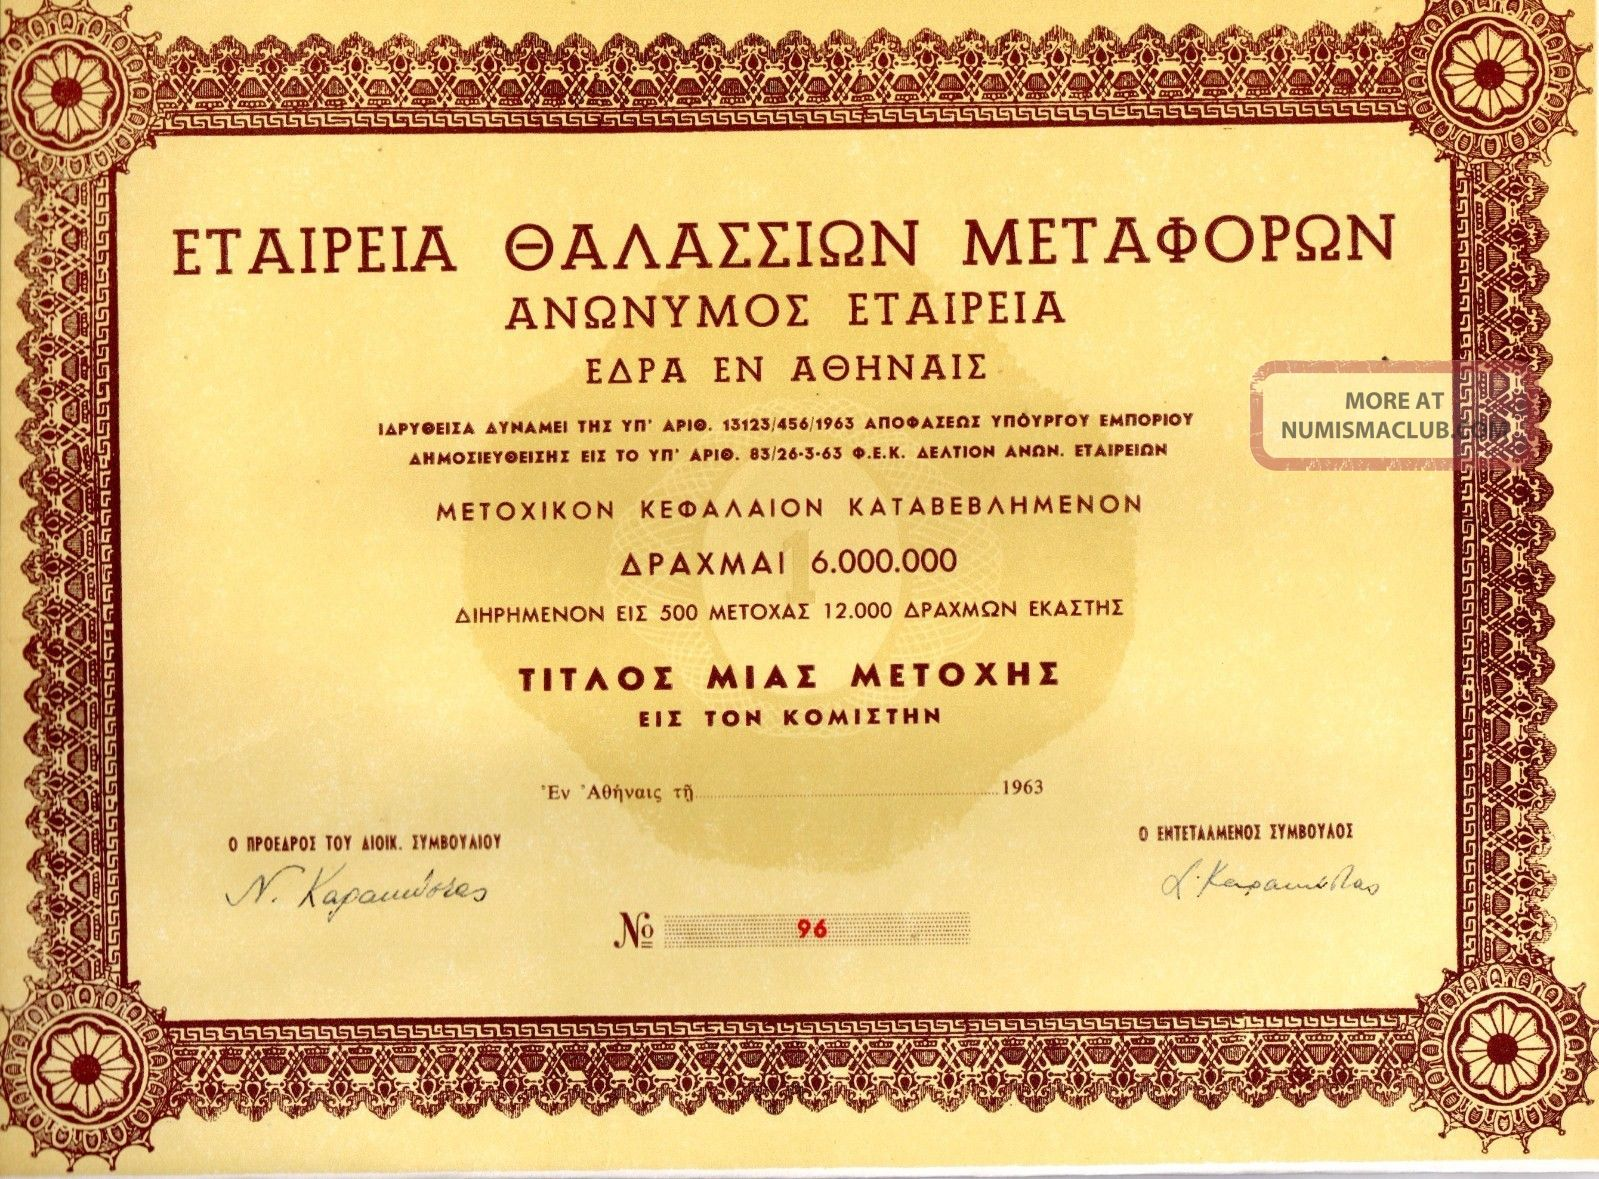 Gr.  Maritime Transport Company Sa,  Title Of 1 Share Bond Stock Certificate 1963 World photo